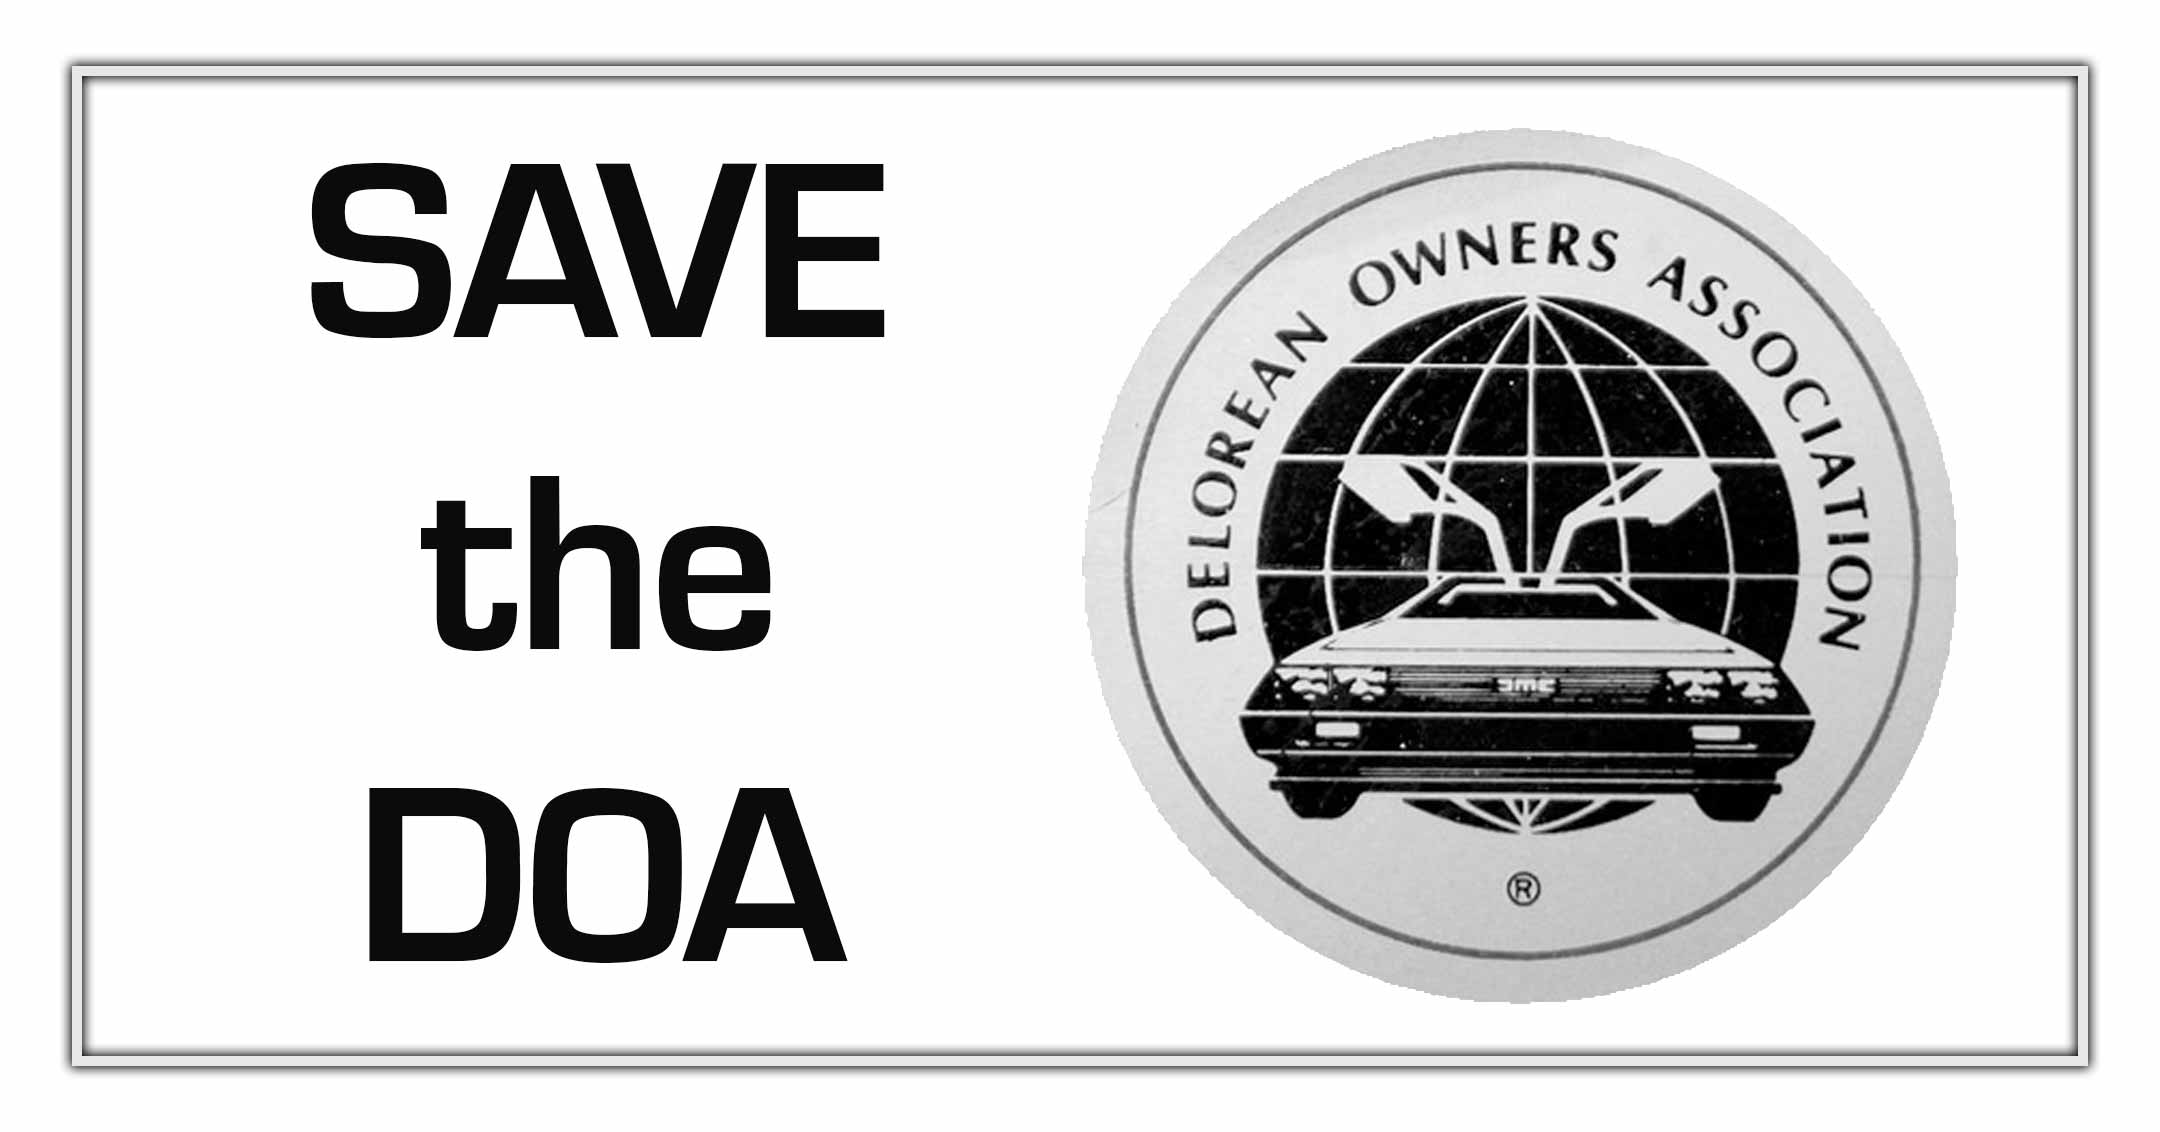 Save the DOA | DeLoreanDirectory.com